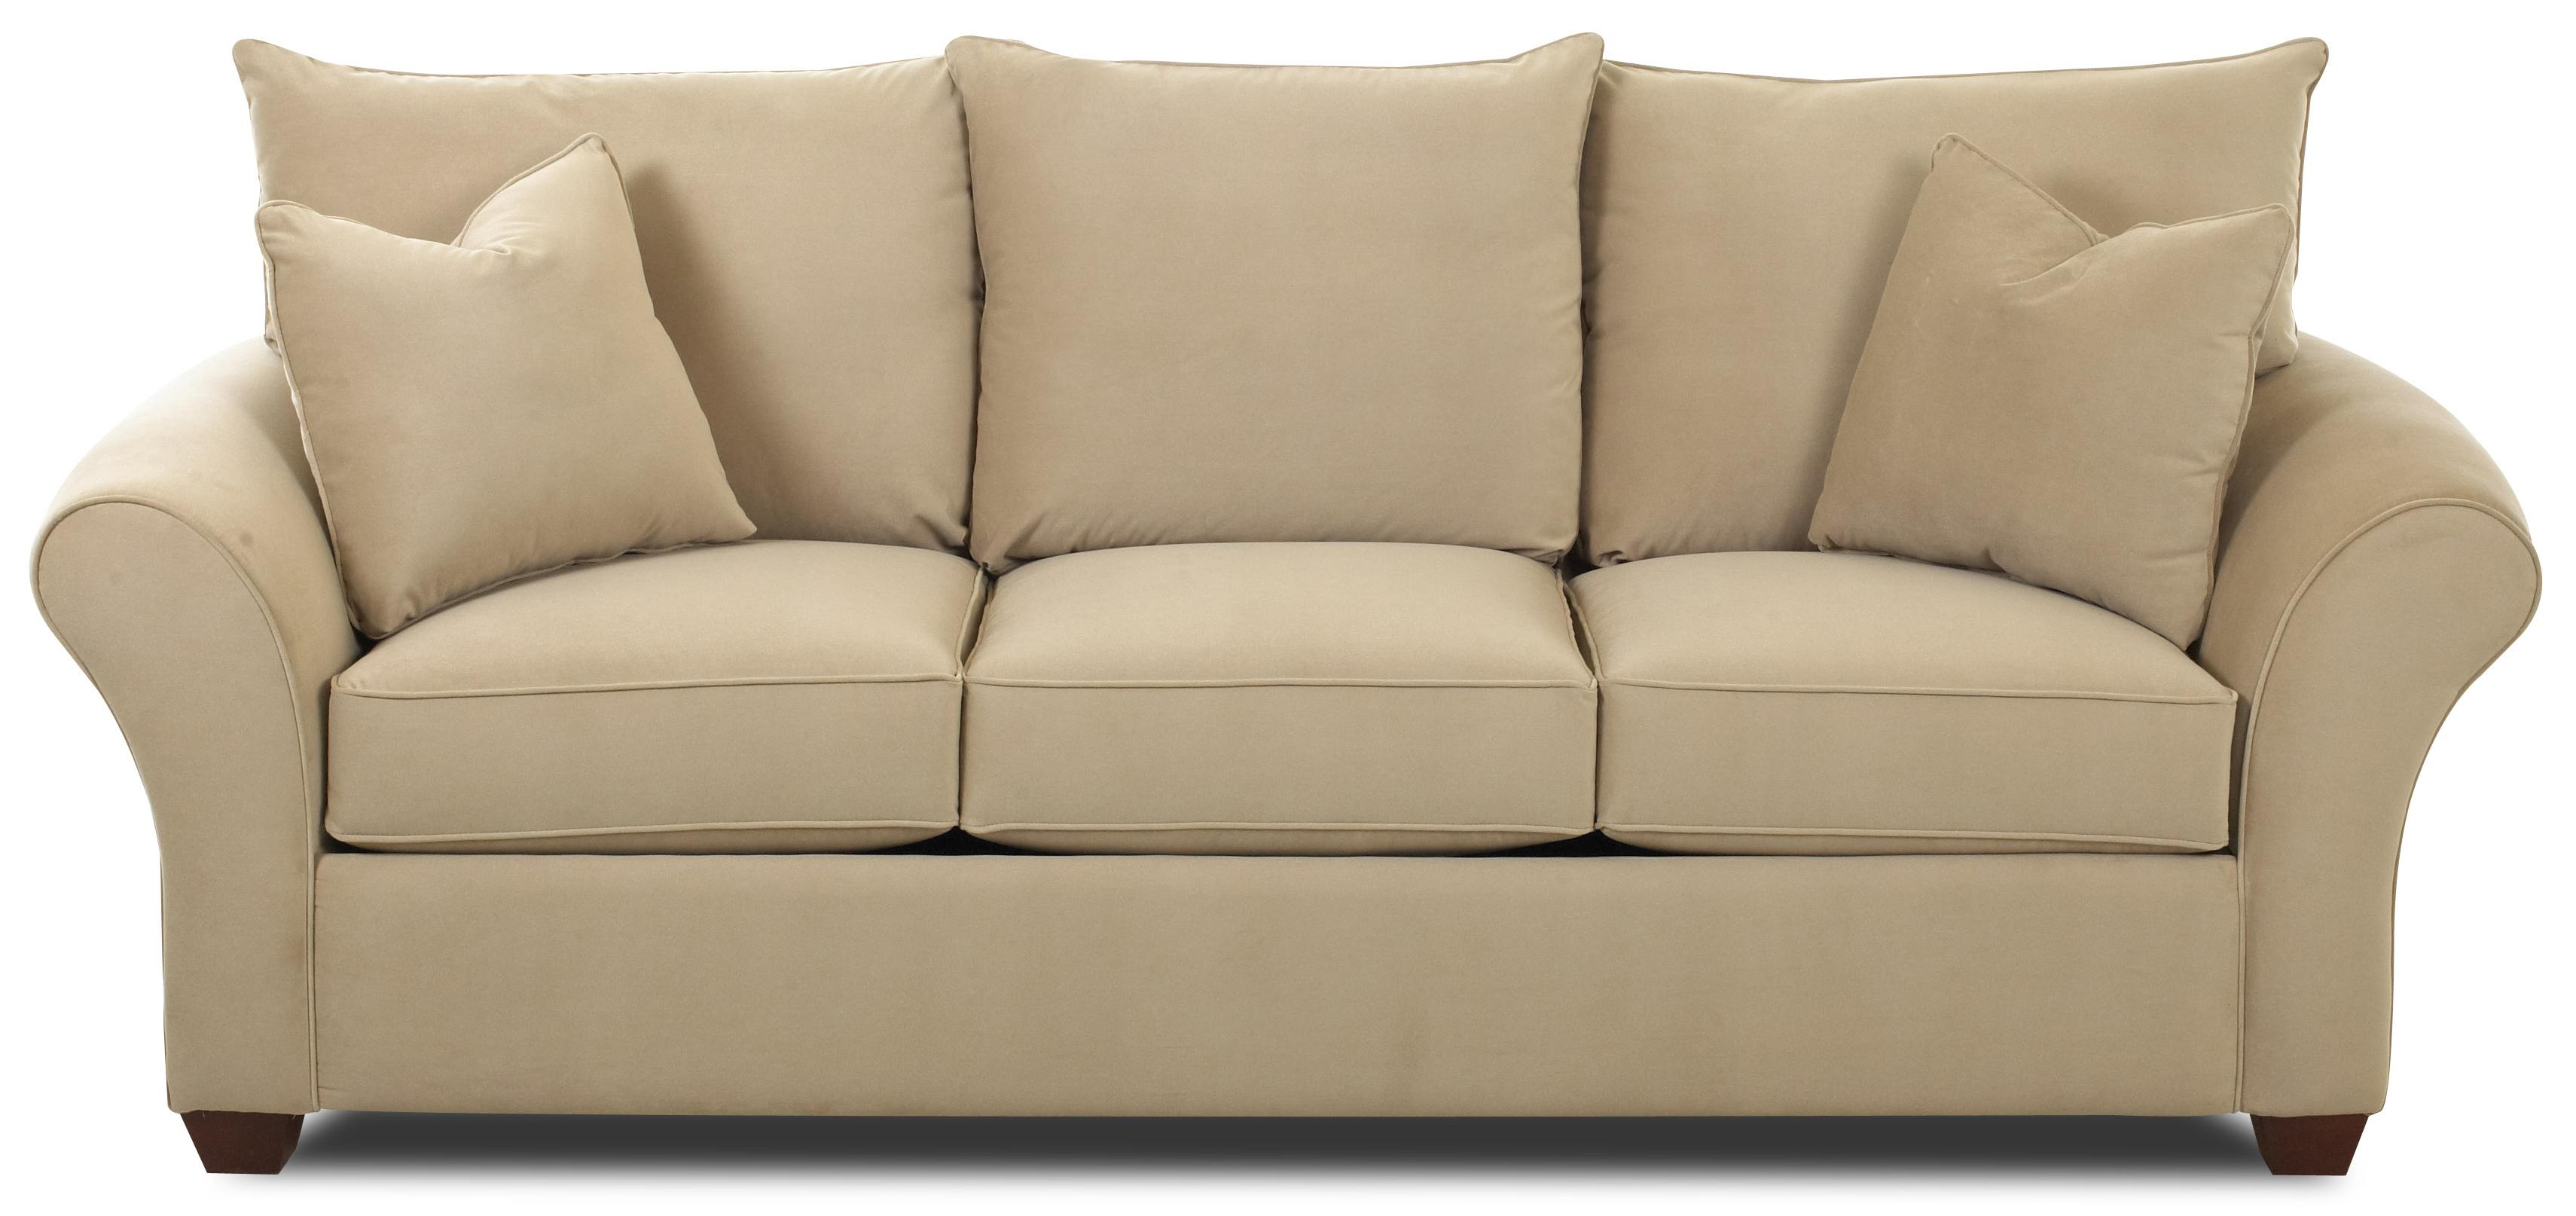 Couch Furniture The Most Comfortable Couch Homesfeed